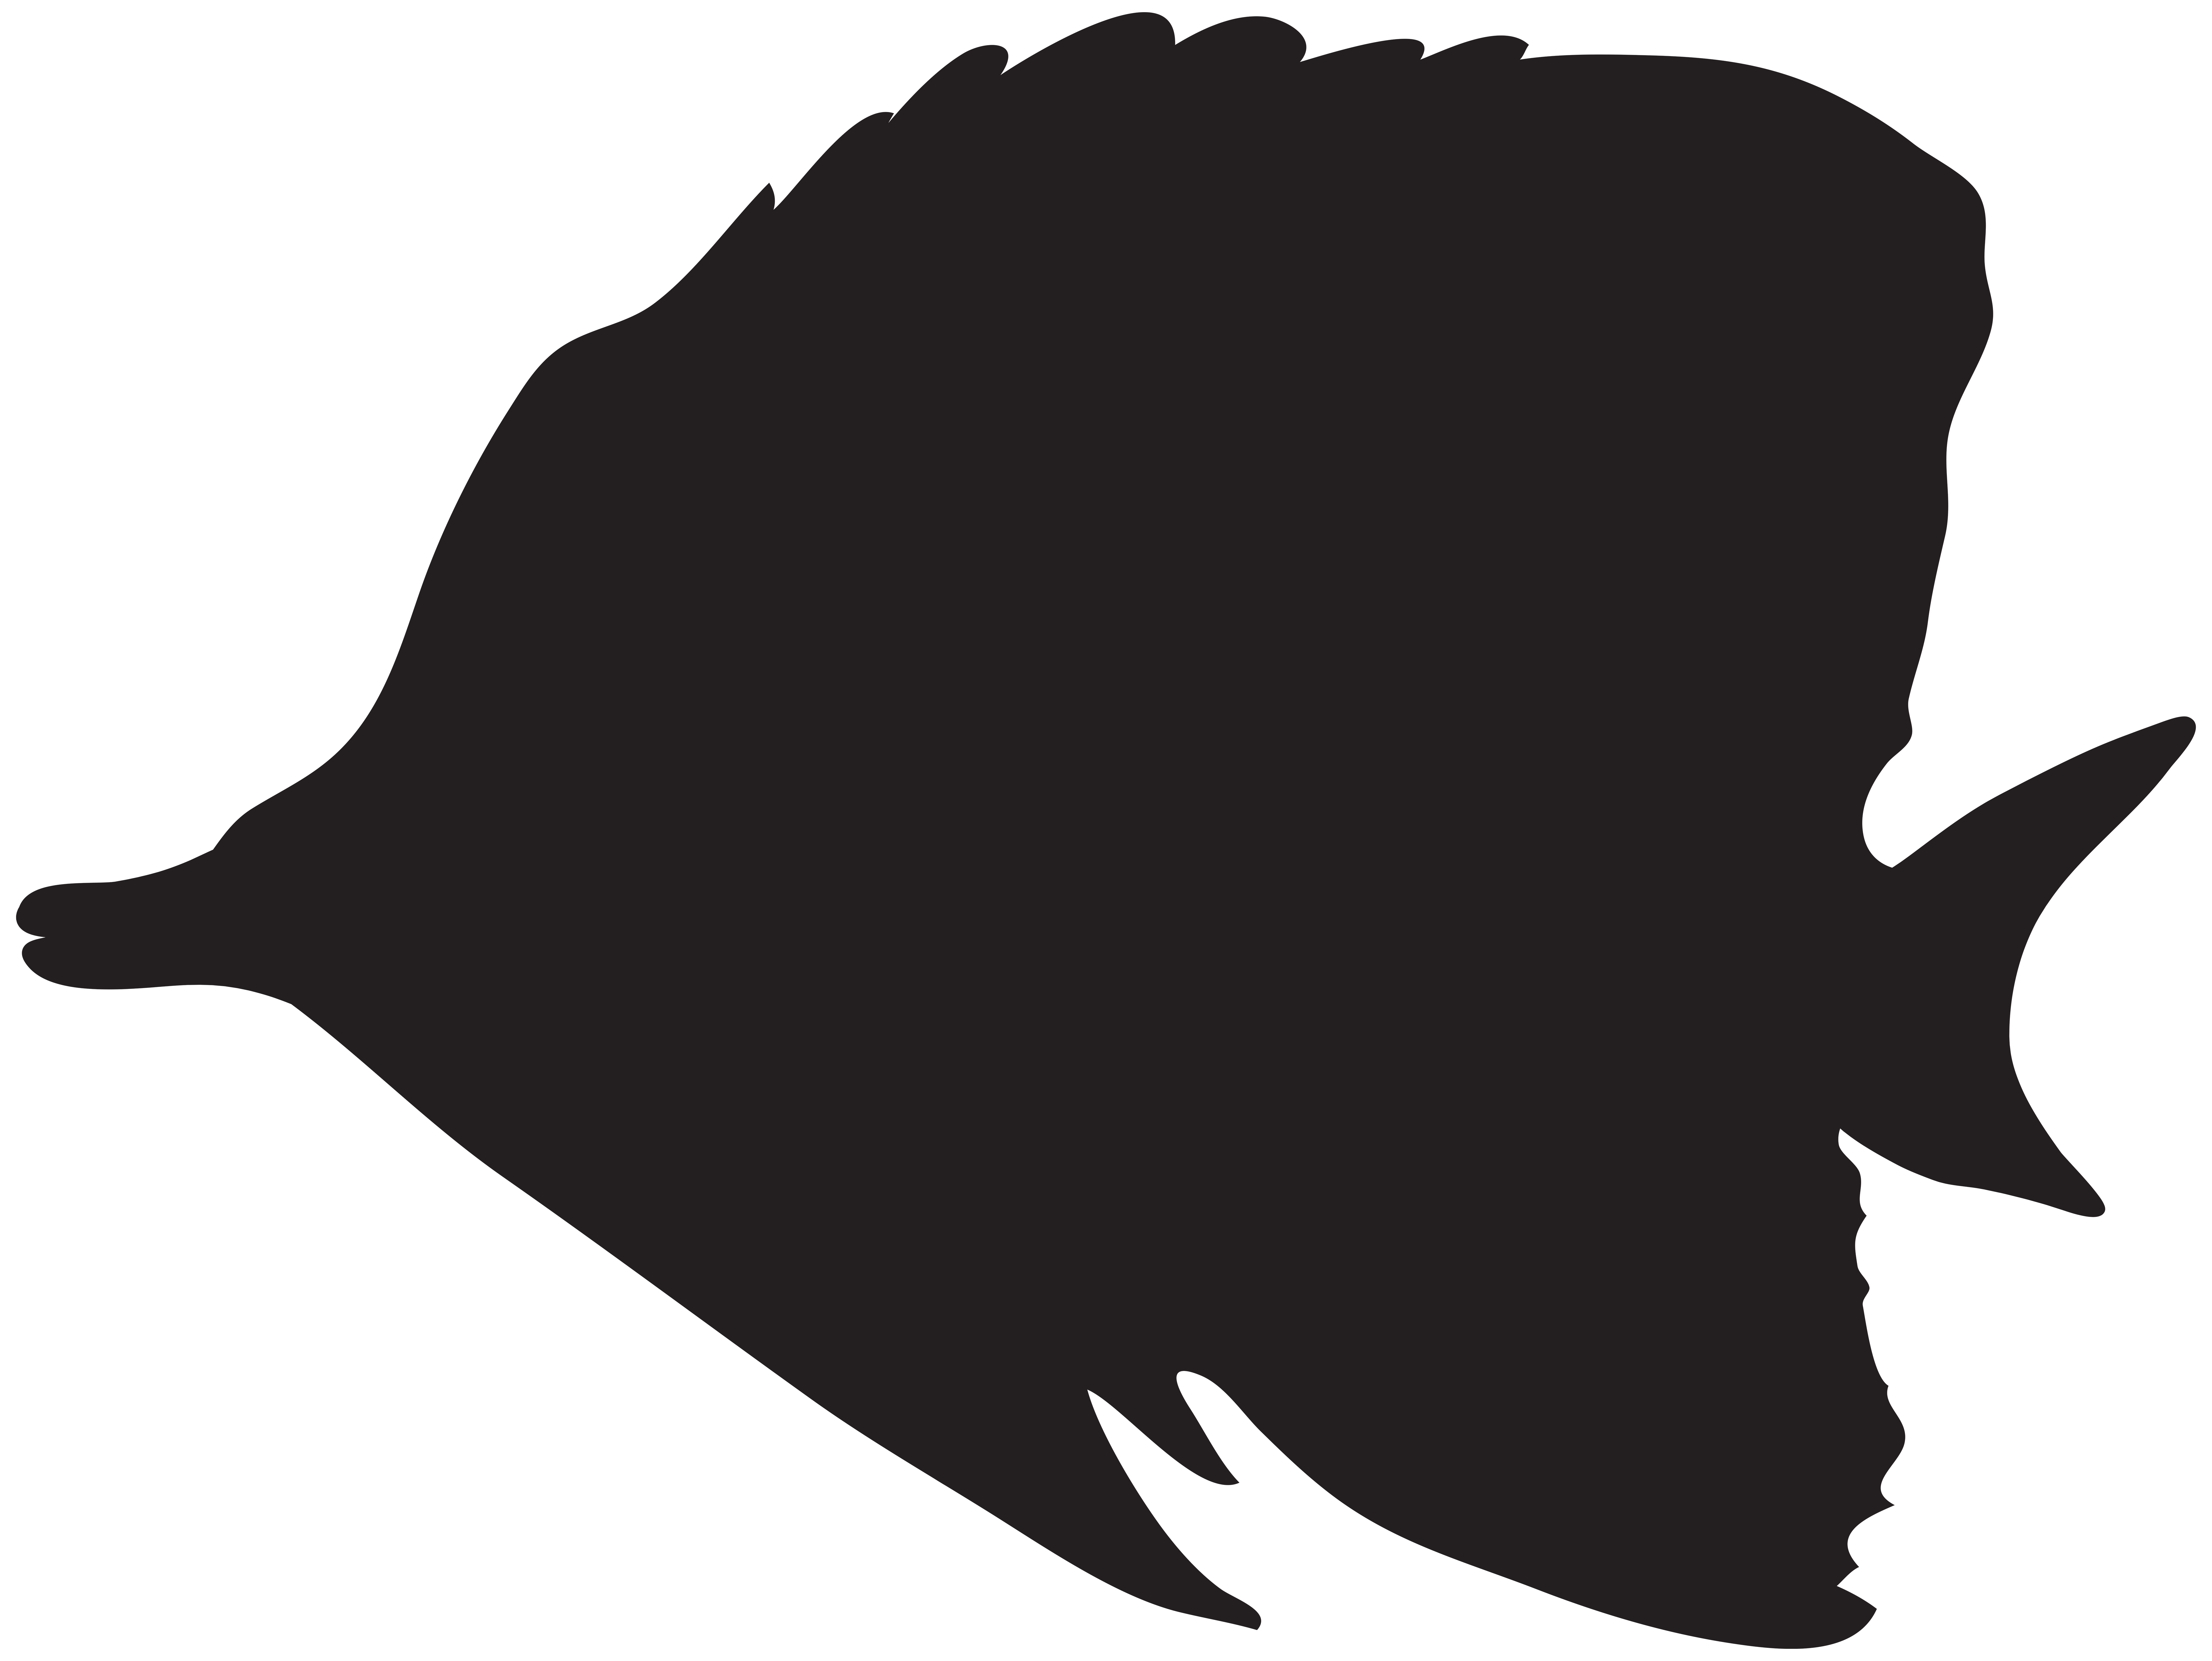 Fishing clip silhouette. Fish png art image